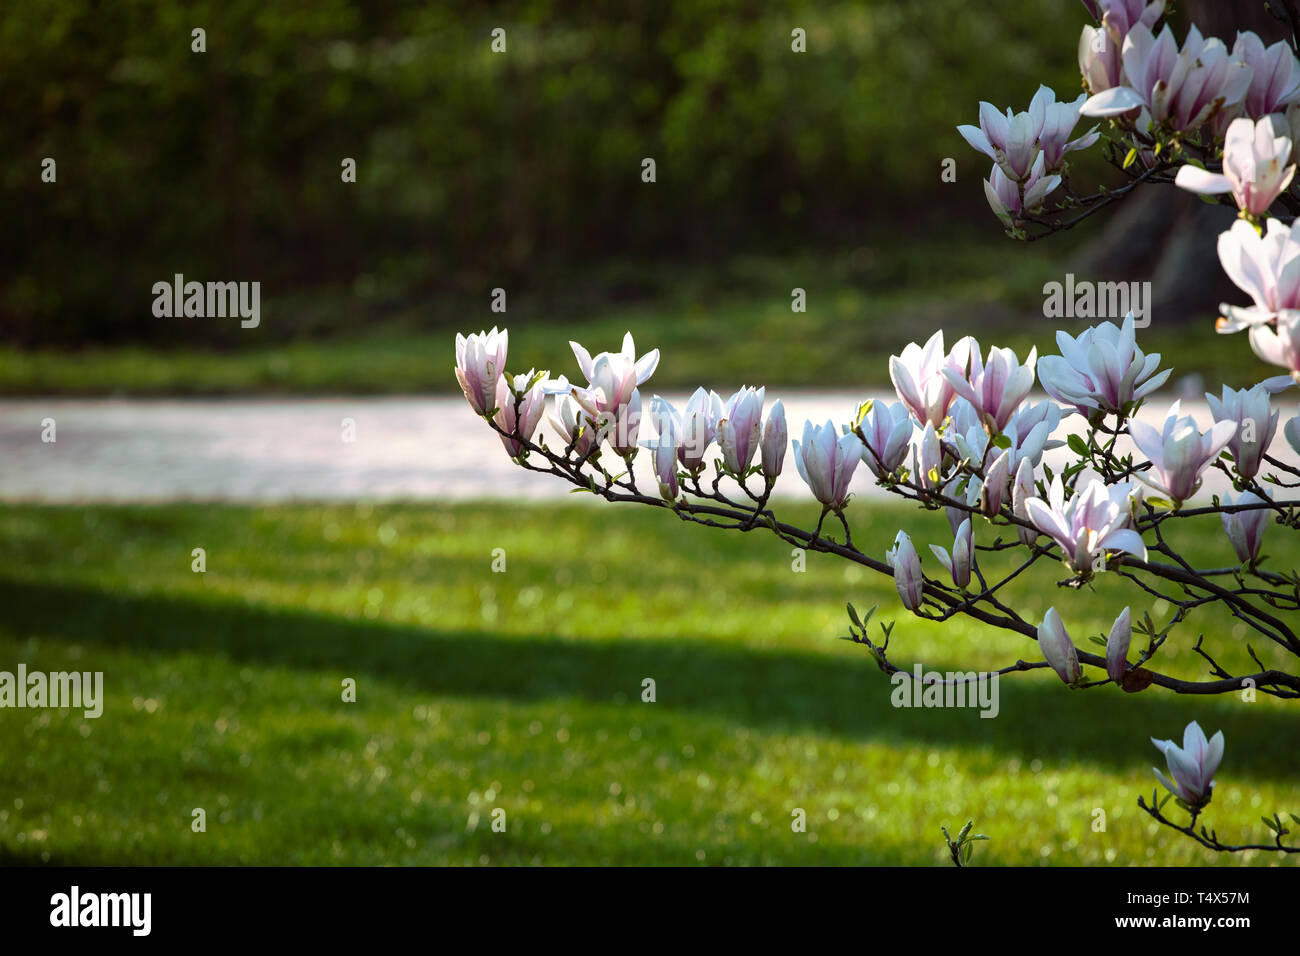 Branch of blooming white, light pink magnolia Flowers on the background of green grass and the park alley. Spring blossom. Flower background. - Stock Image